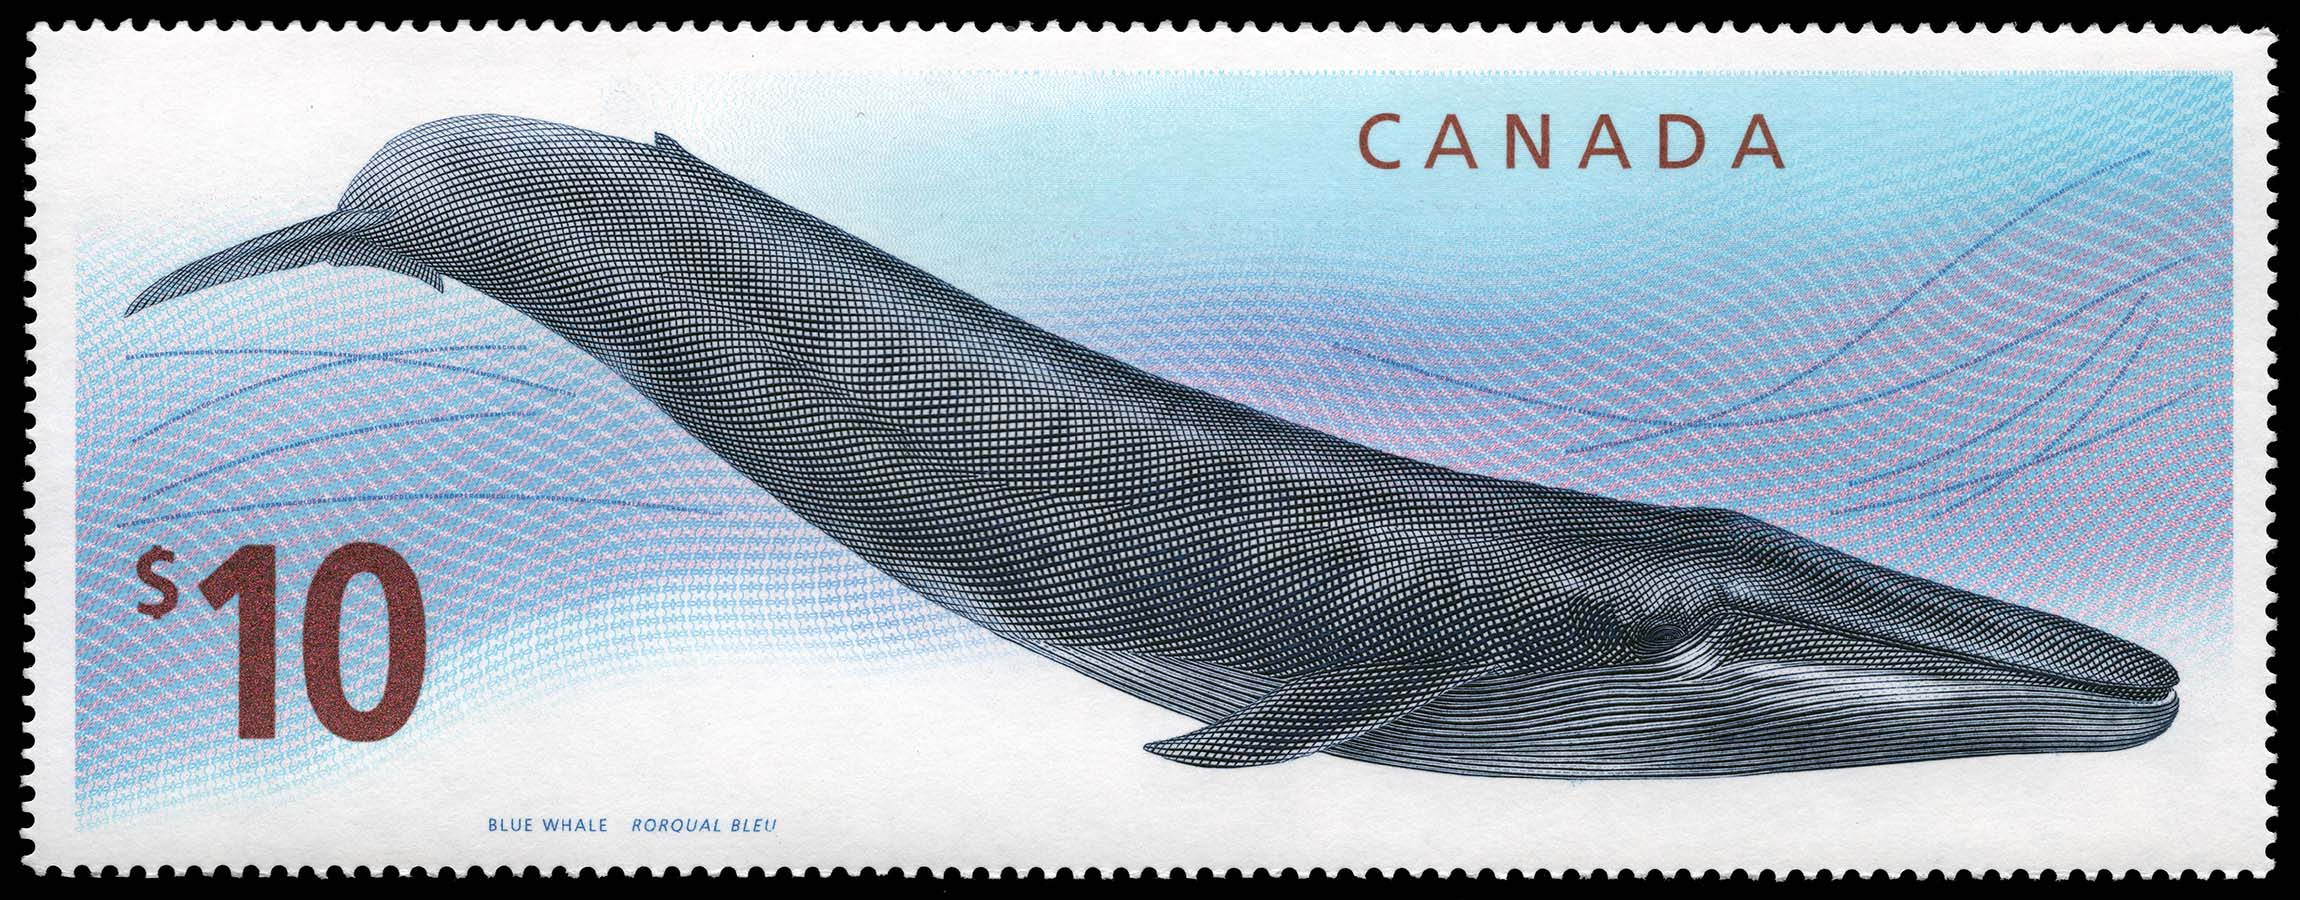 Blue Whale Canada Postage Stamp